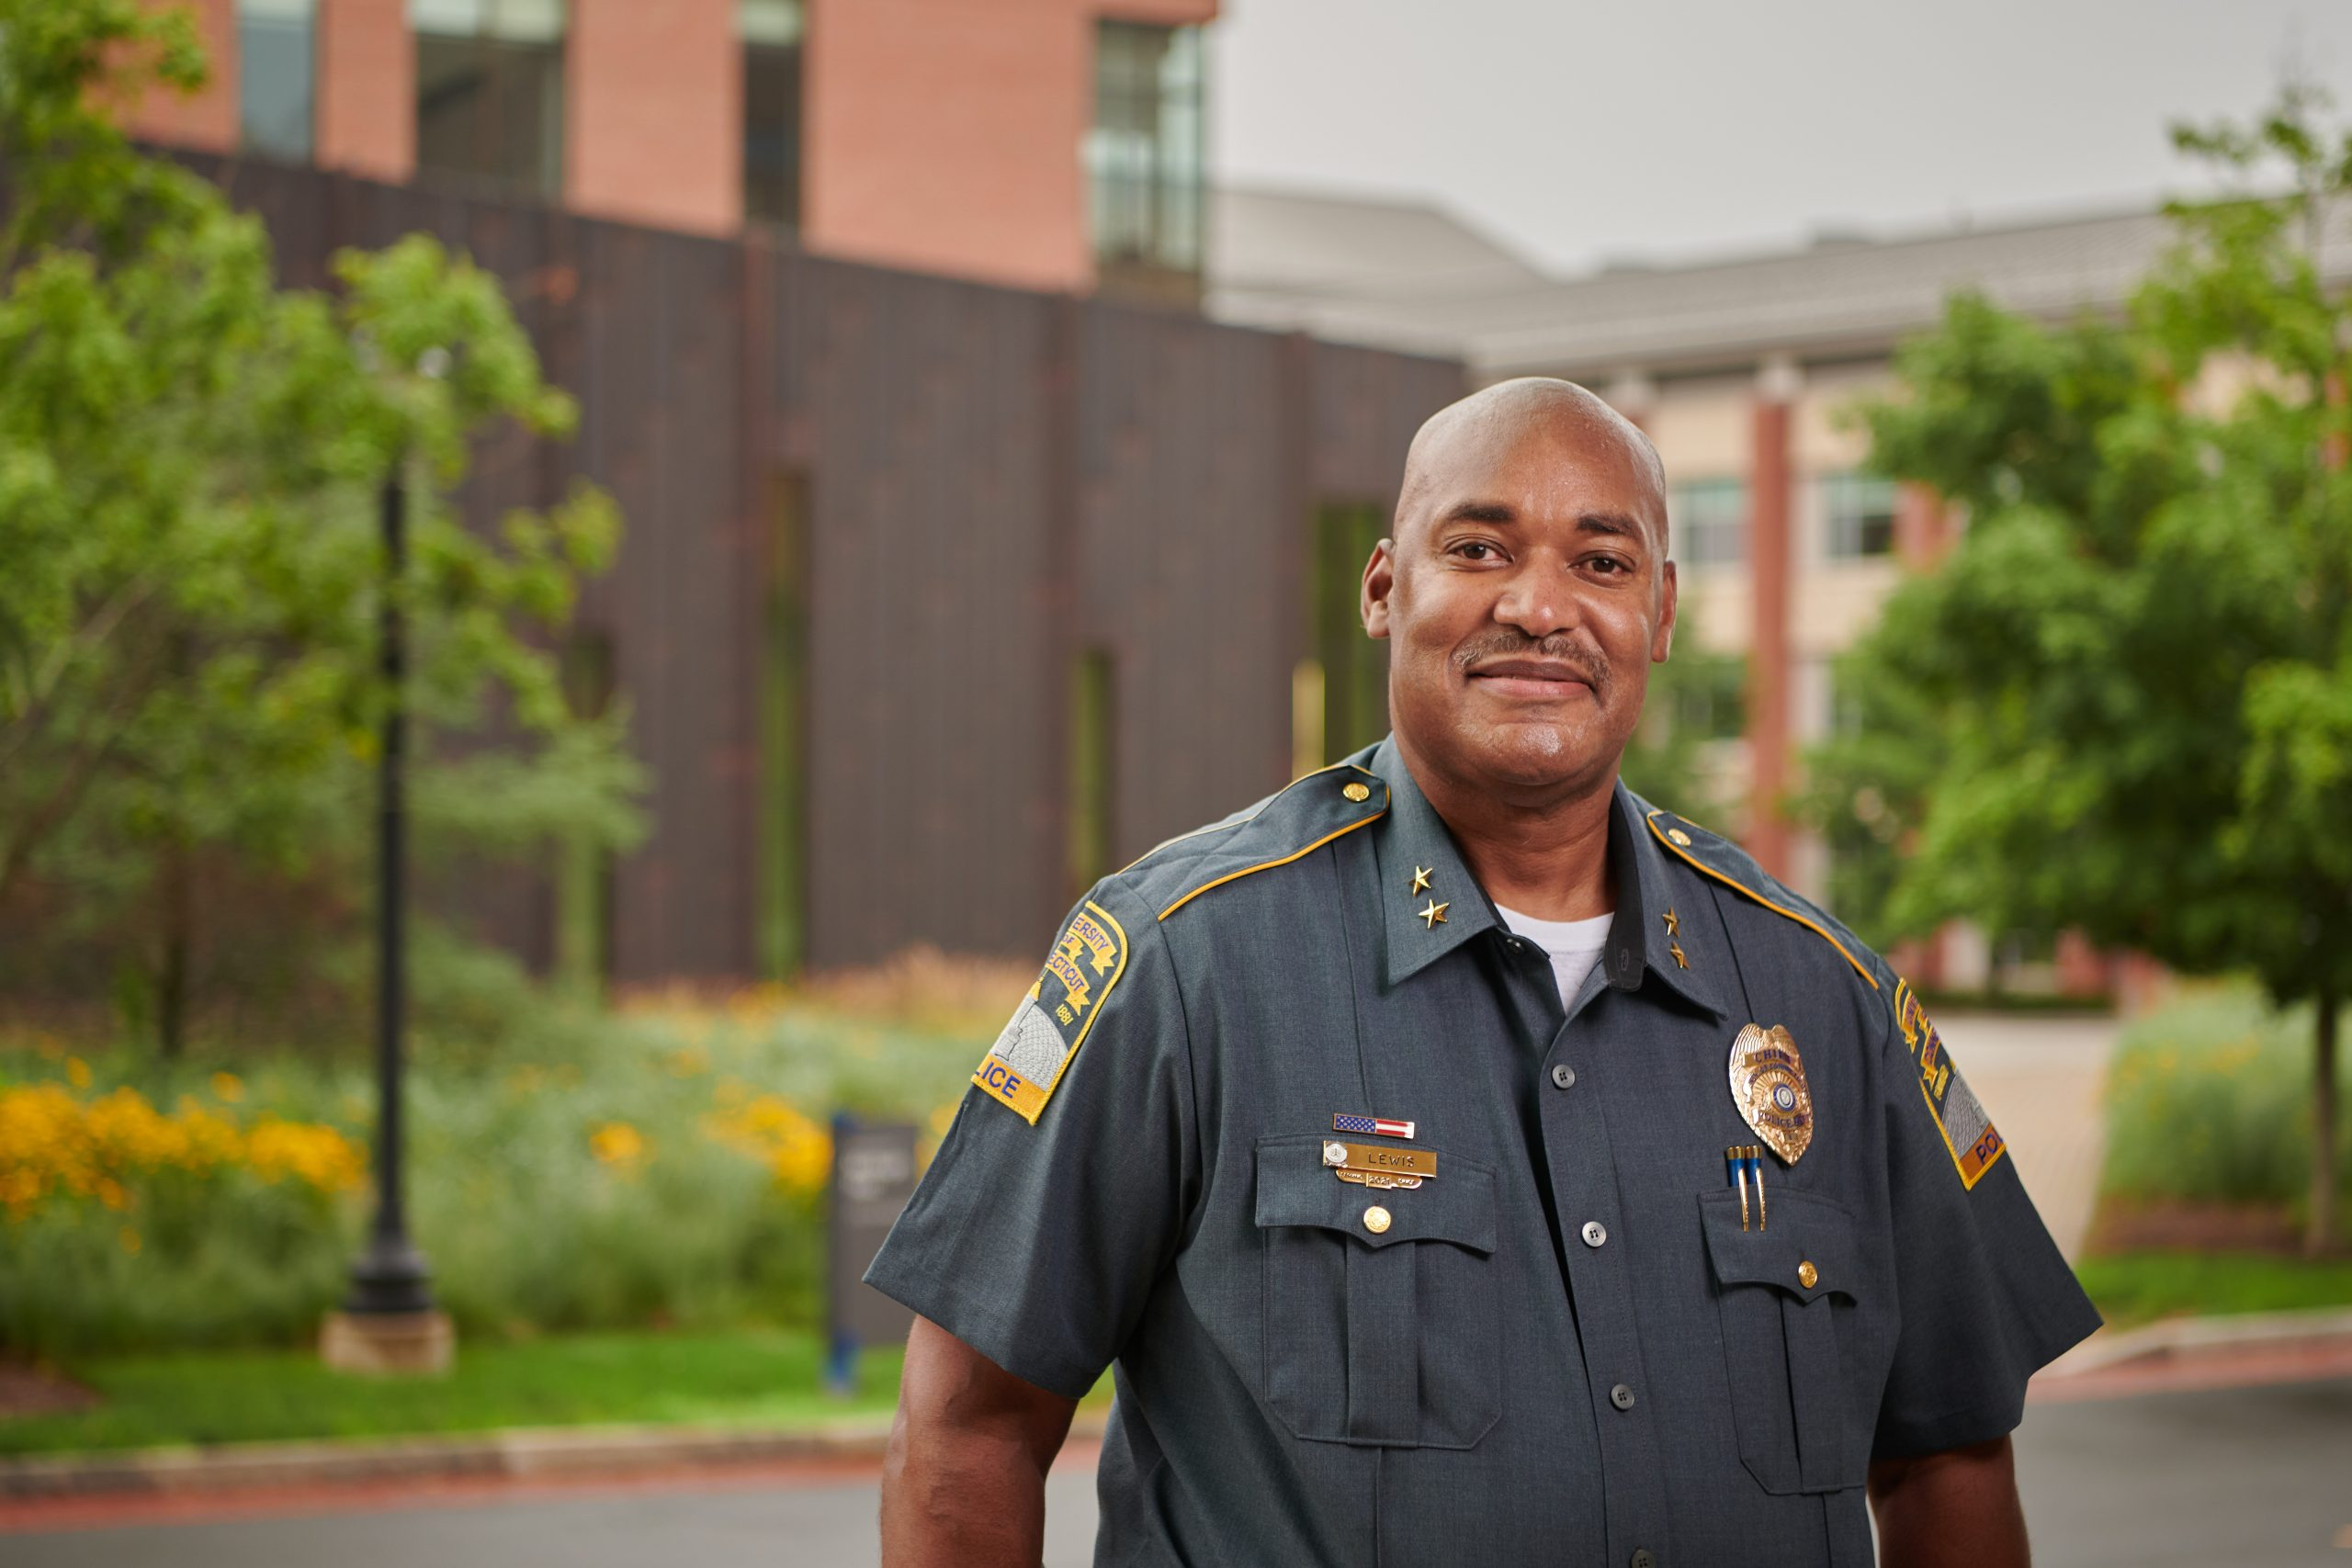 Gerald Lewis, UConn chief of police, along Fairfield Way on July 19, 2021